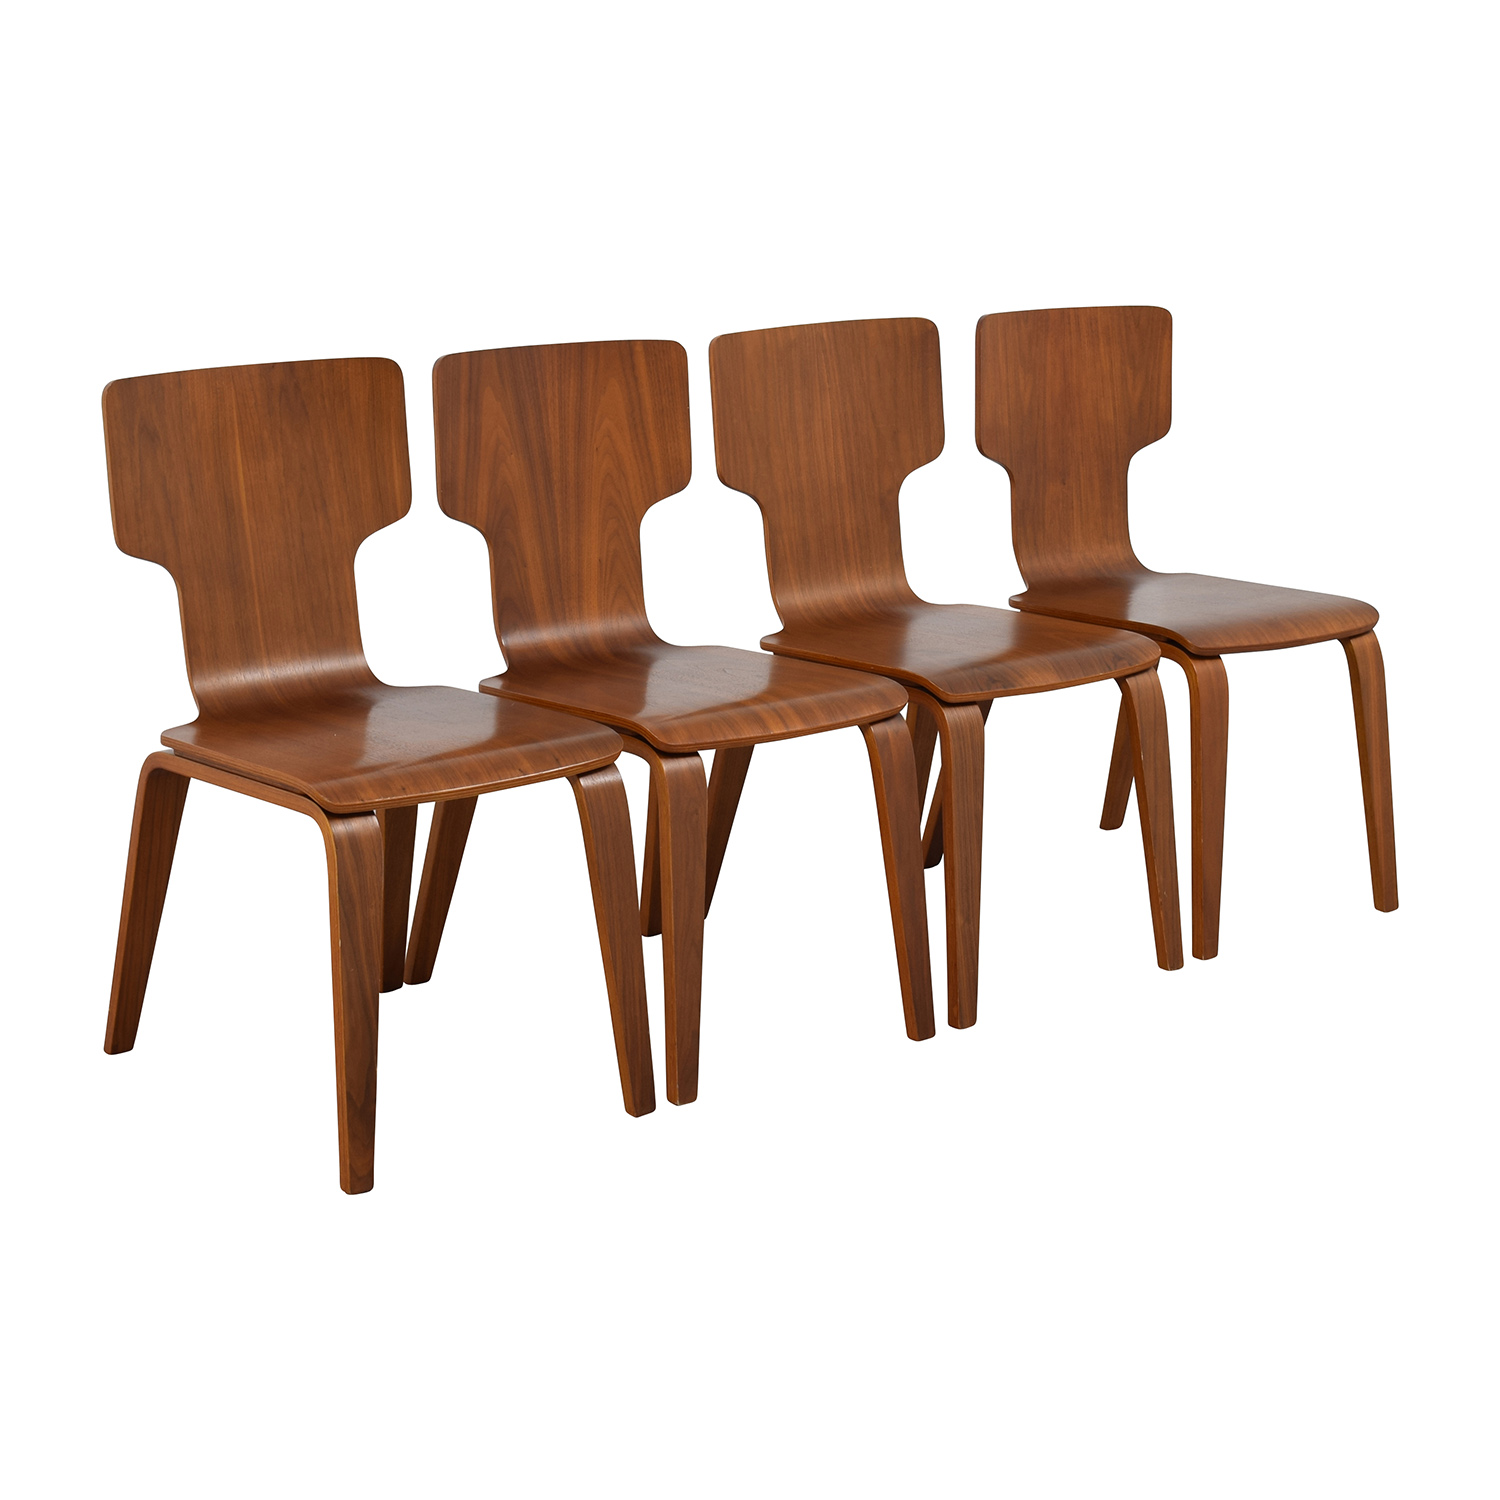 west elm chairs dining plastic outdoor lowes 59 off table